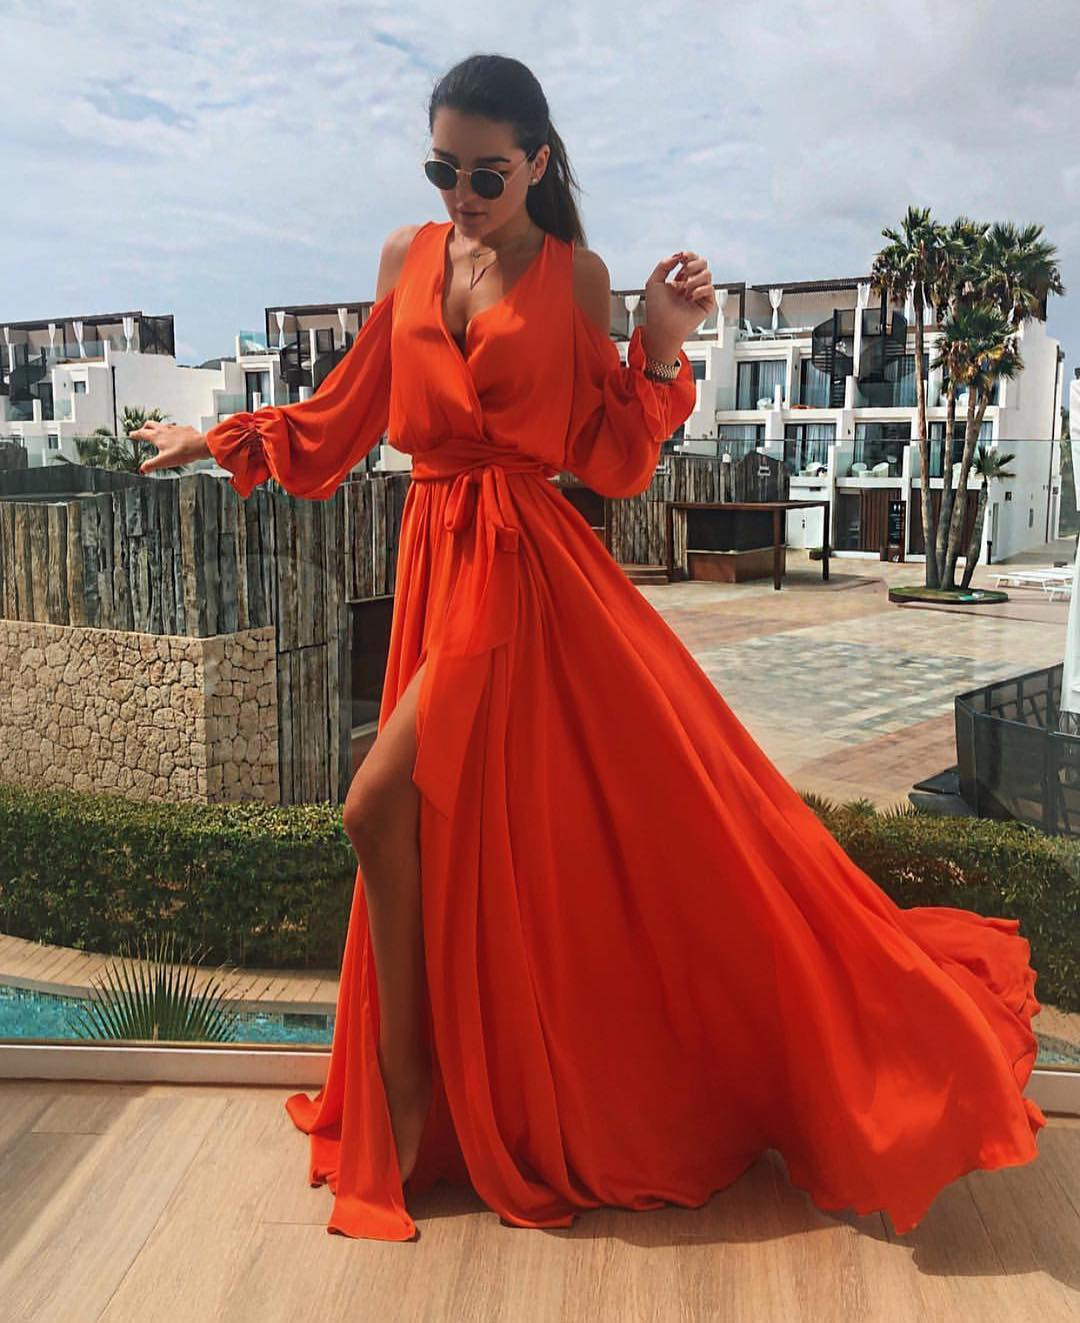 Red Orange Maxi Dress In Silk For Summer Glamour Parties 2020